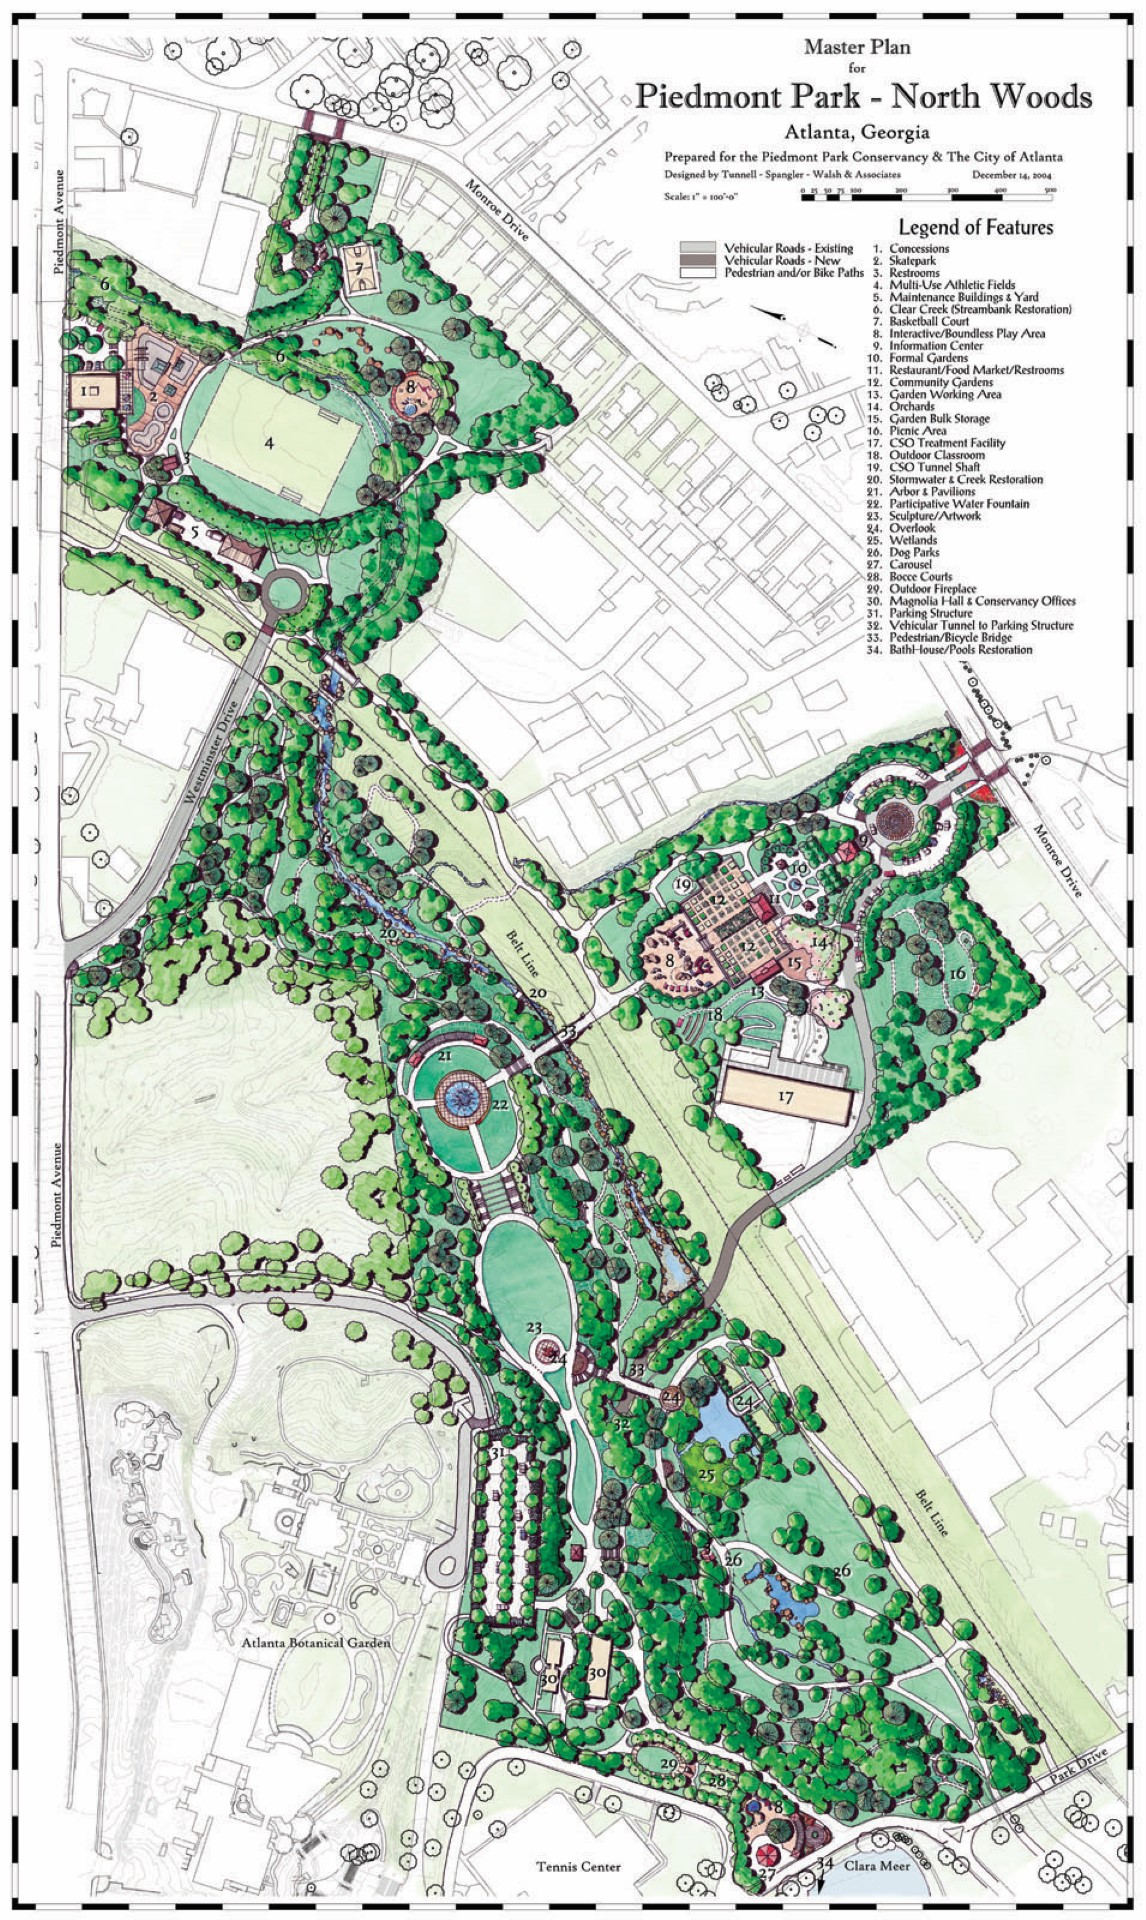 Piedmont Park North Woods Master Plan